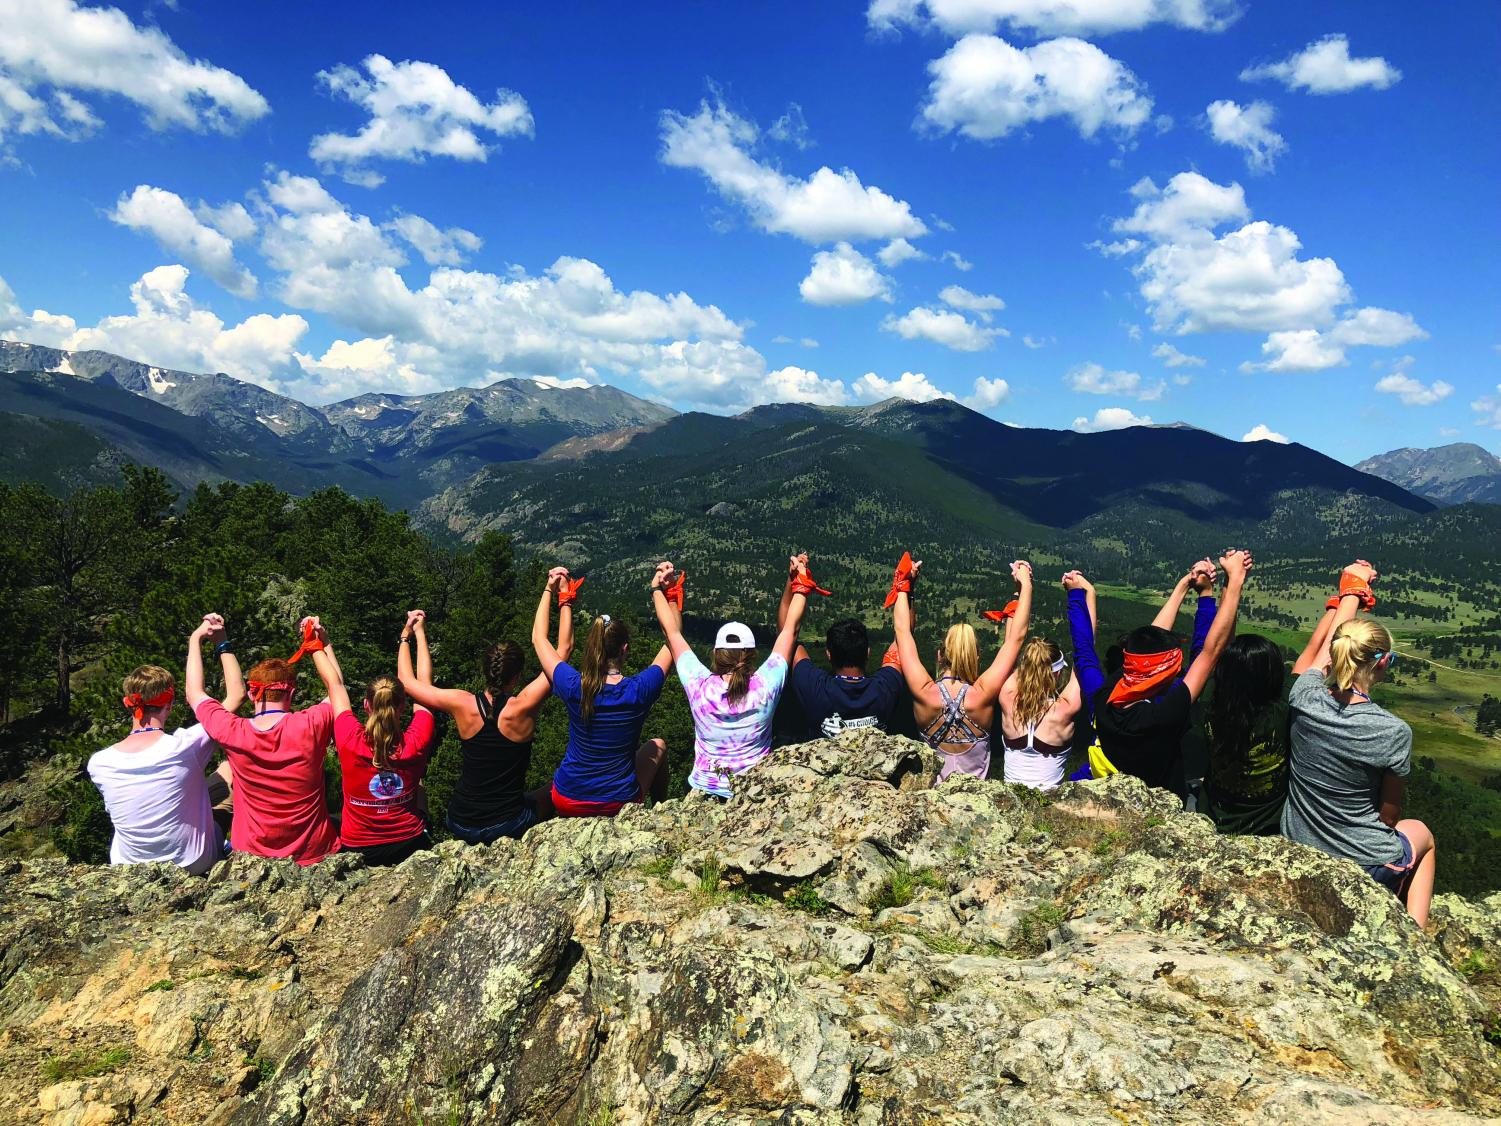 Conferees raise arms in victory after tackling a team building hike at the YMCA of the Rockies. Climbers scaled the mountain wearing symbolic orange bandanas on their wrists.